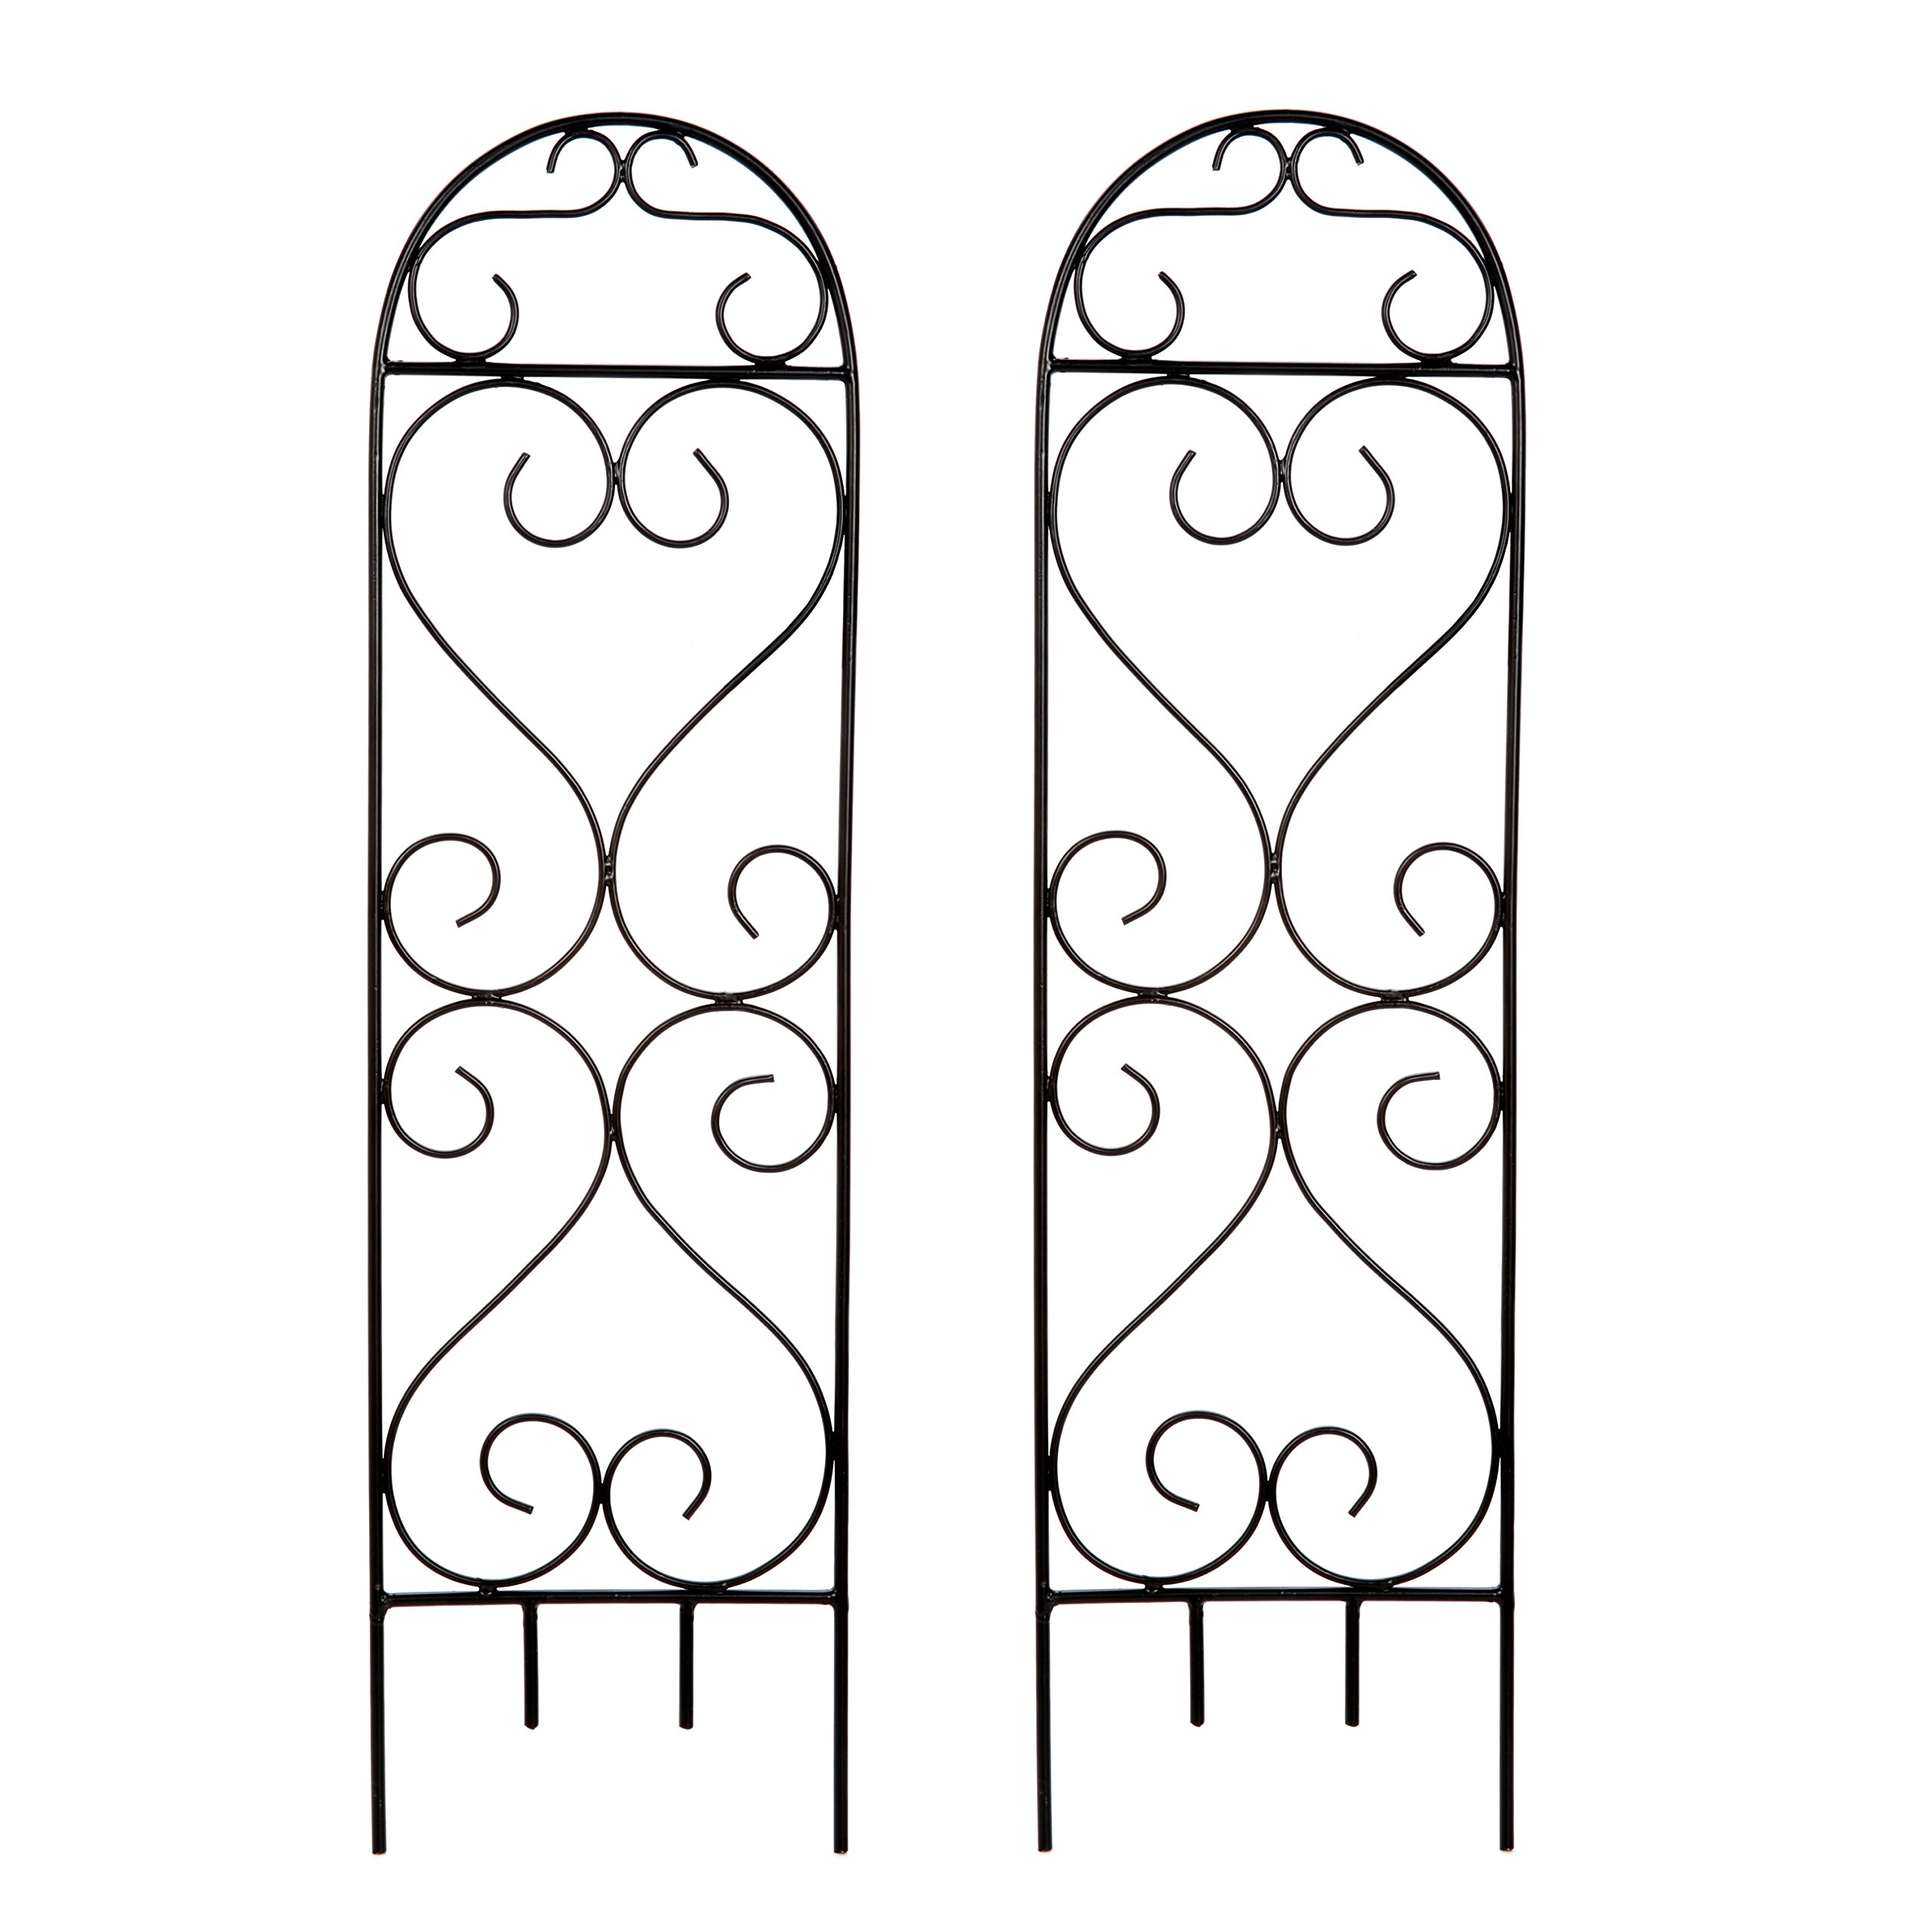 Hosley's Set of 2 Scroll Planter Trellis, 27'' High. Ideal Gift for Wedding or Party and Use next to Structures (home or office) or in Planters for Growing Floral, Plants, Vines and Vegetables O3